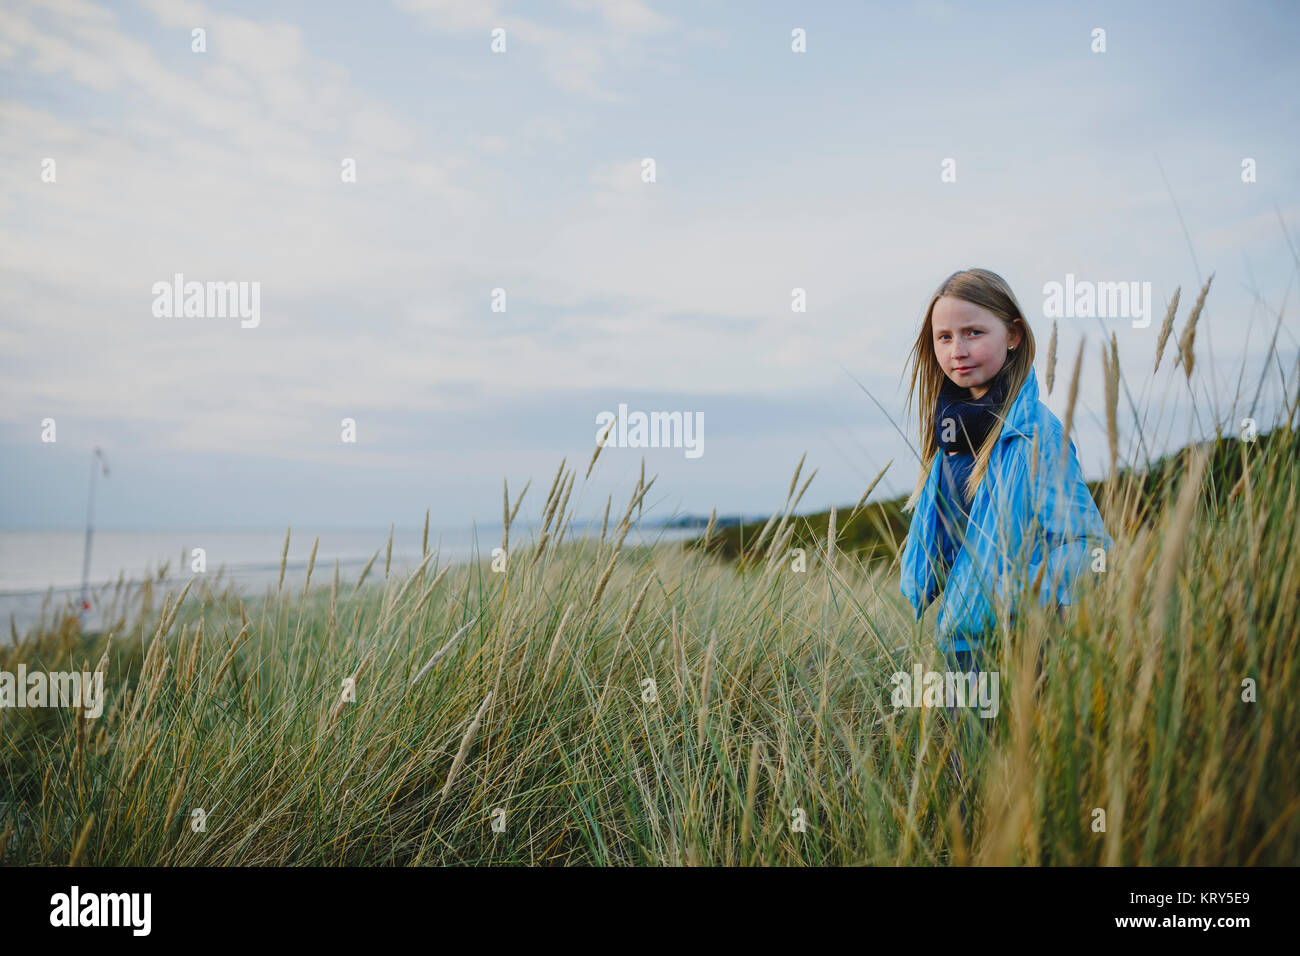 A young girl standing in long grass - Stock Image